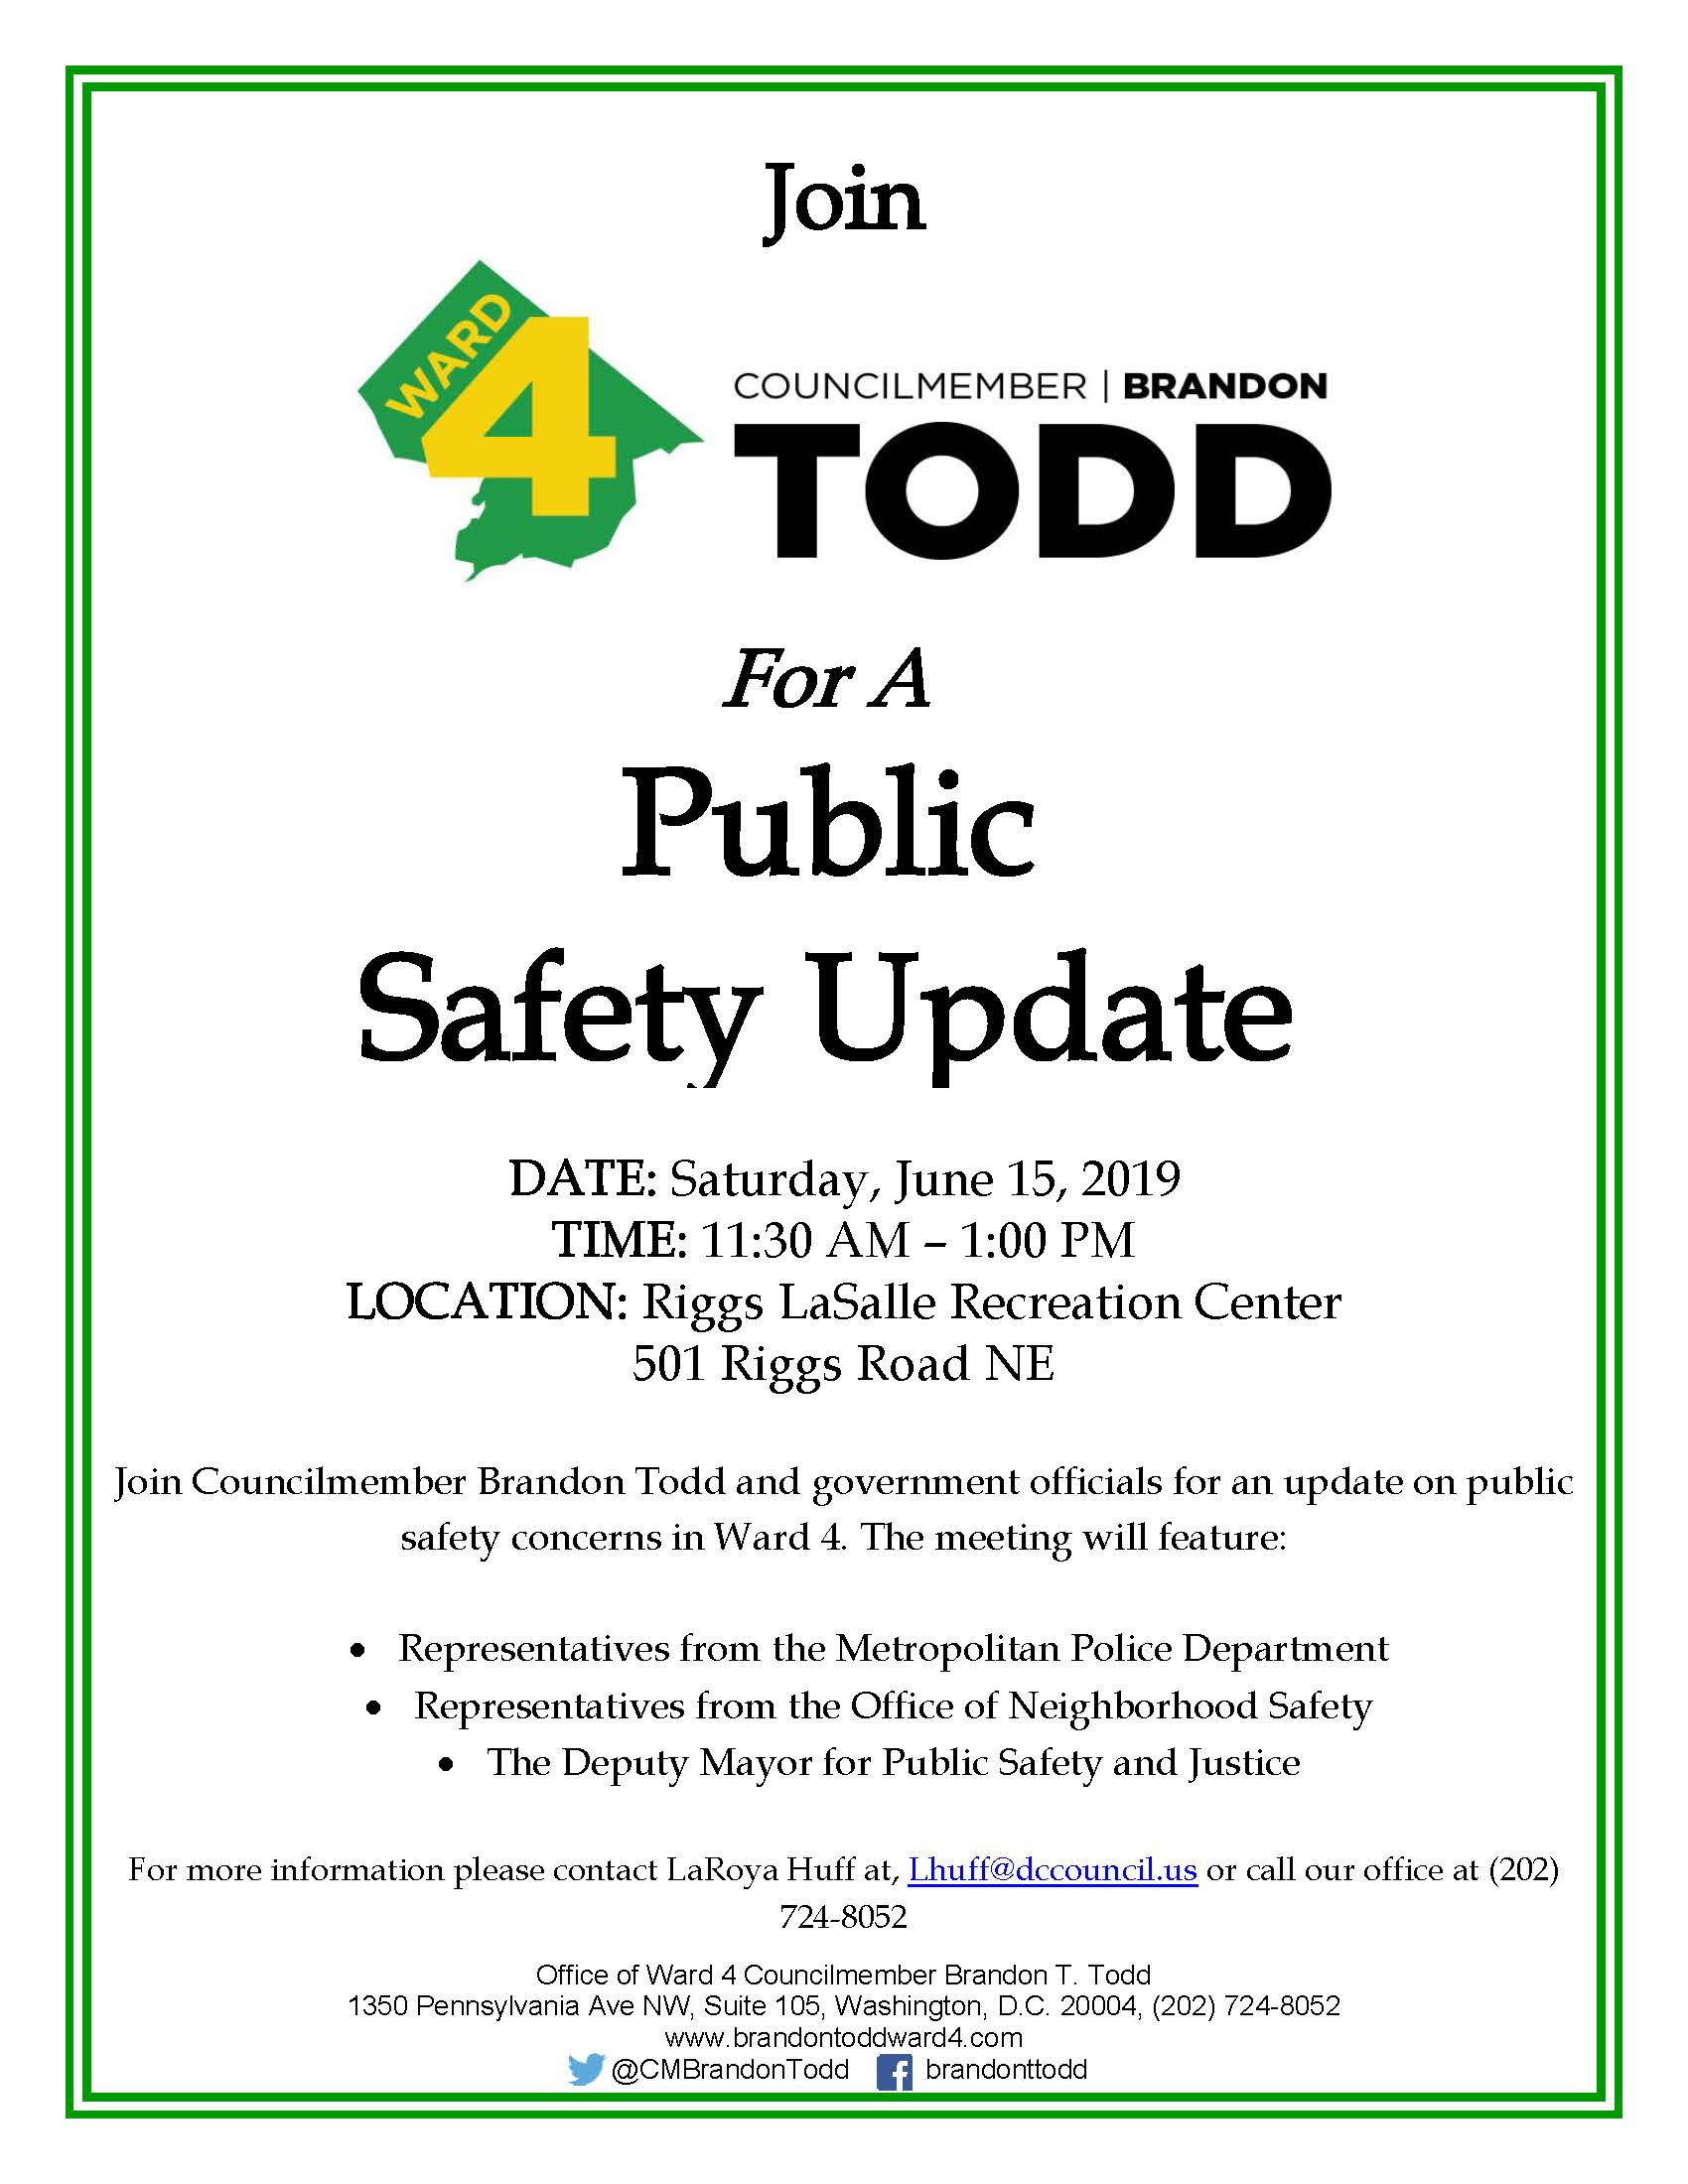 Public safety dating sites